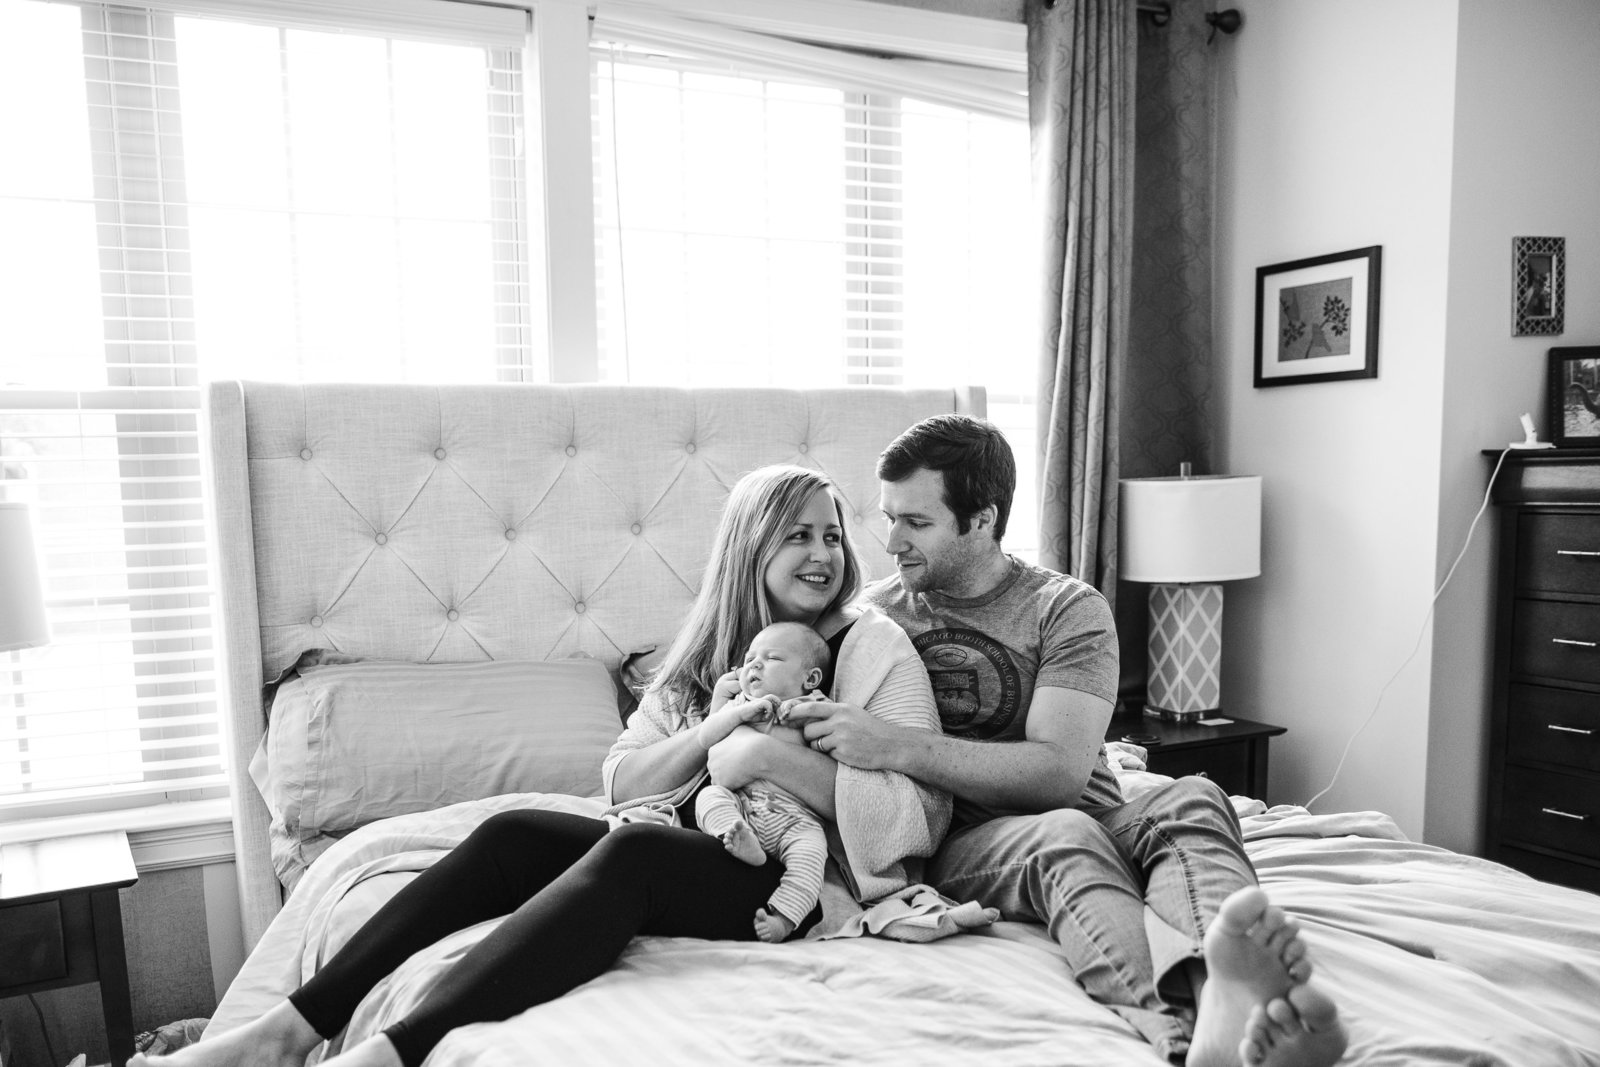 south boston couple hold baby boy sitting on master bed